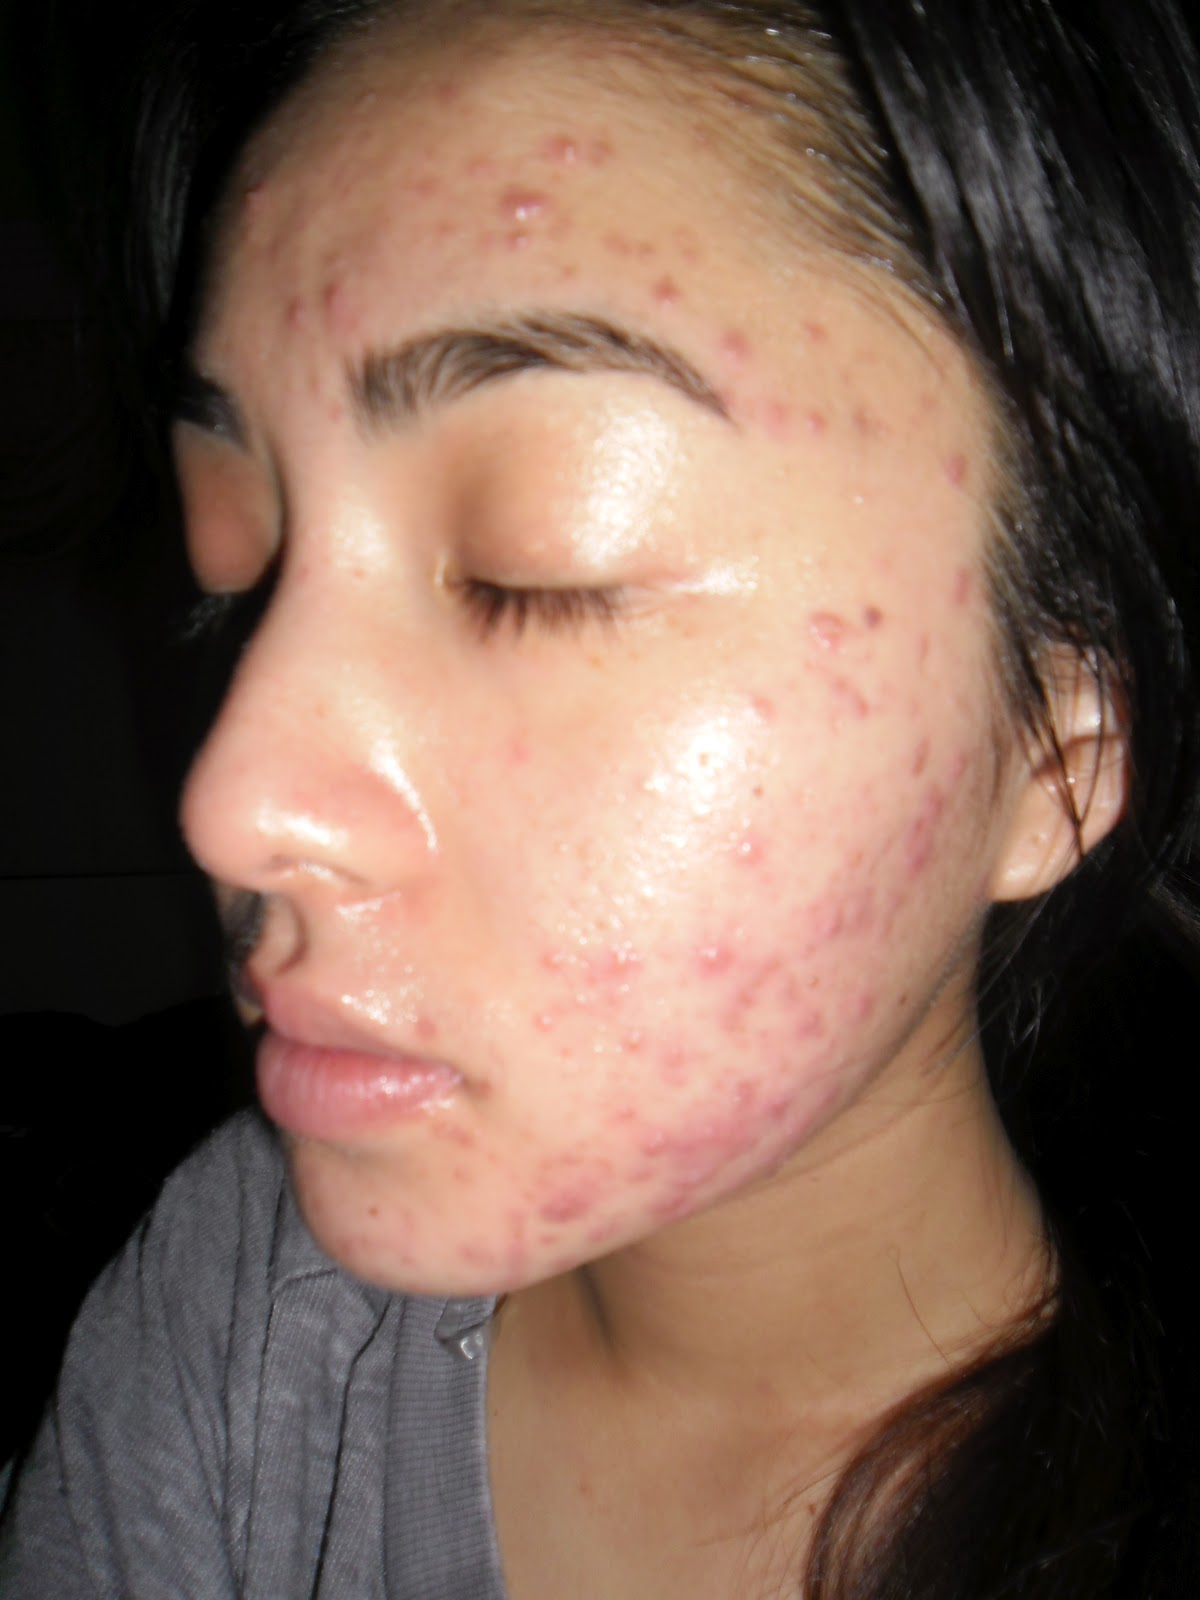 Dating Someone With Severe Acne